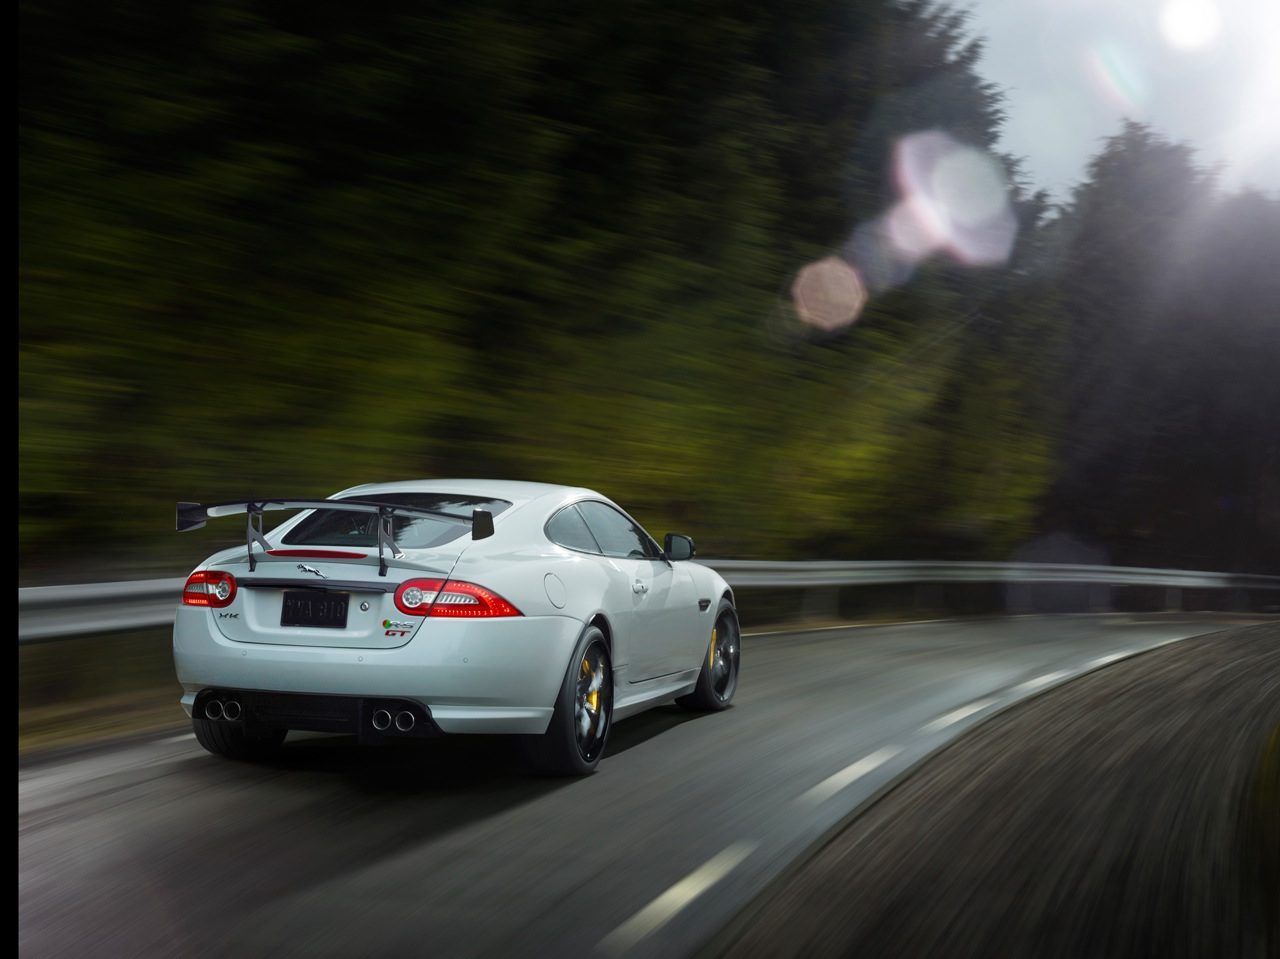 2014 Jaguar XKR-S GT: The Lastest & Fastest Offering from